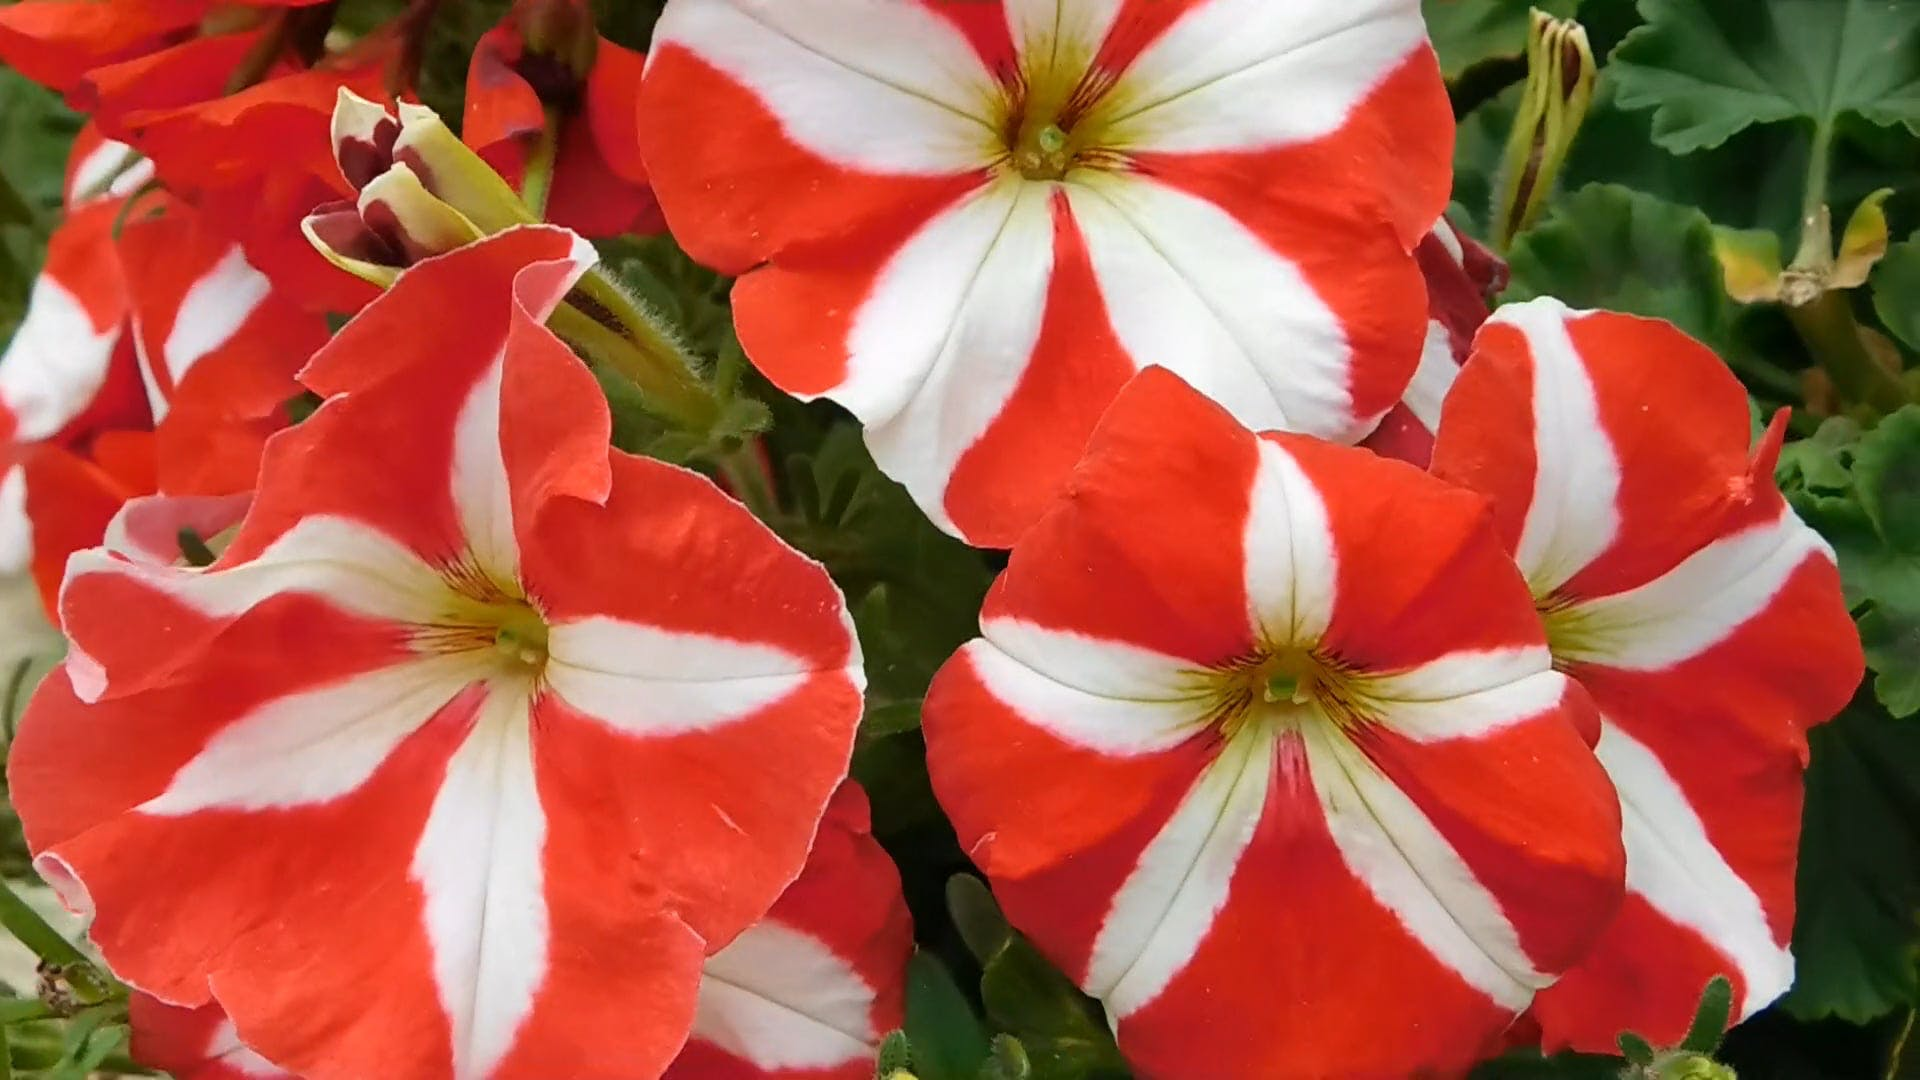 Red and White Striped Flowers